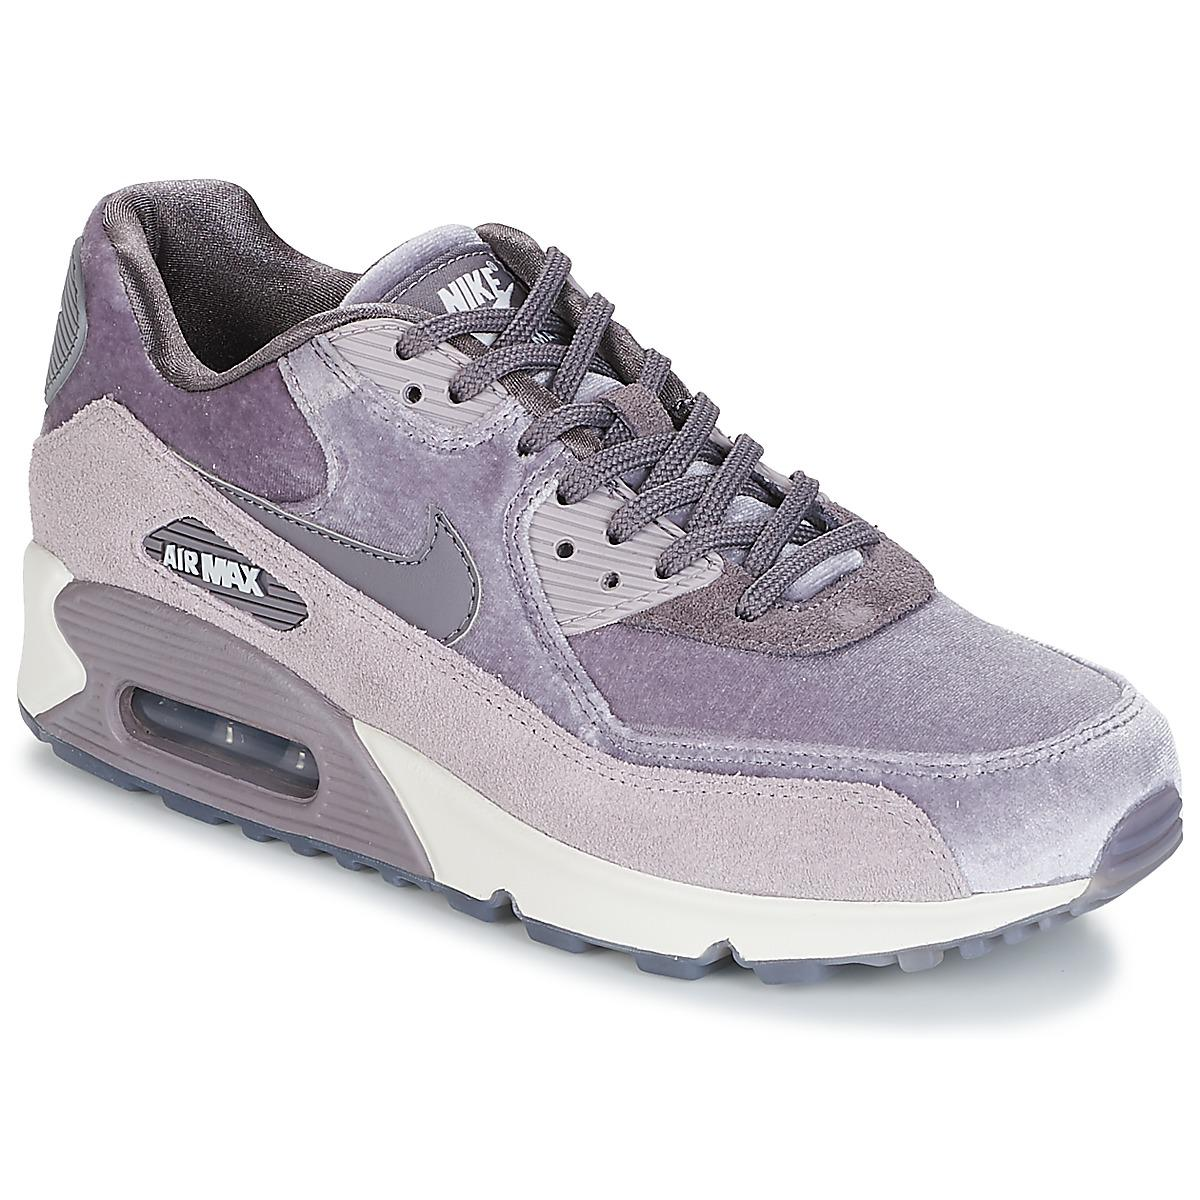 High Quality For Sale Nike AIR MAX 90 SE W women's Shoes (Trainers) in Footaction Cheap Online c1GbX2